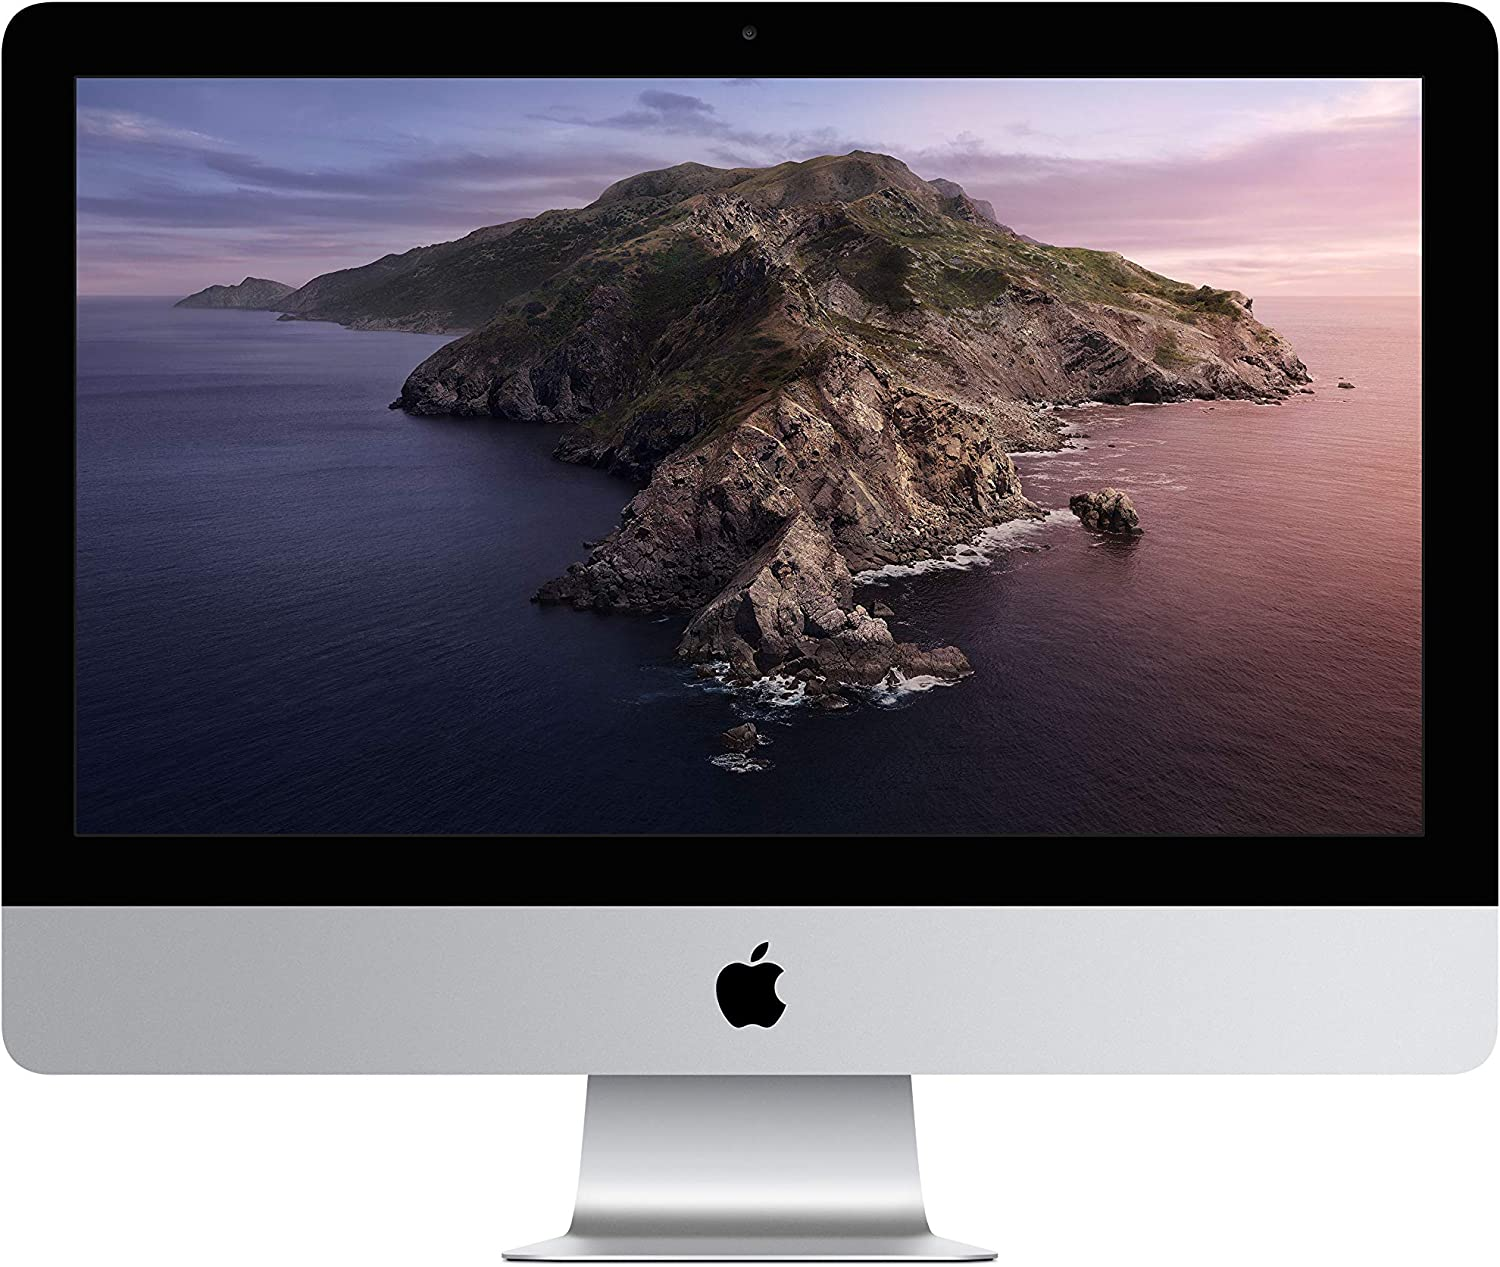 Apple iMac (21.5-inch, 8GB RAM, 1TB Storage) - Previous Model